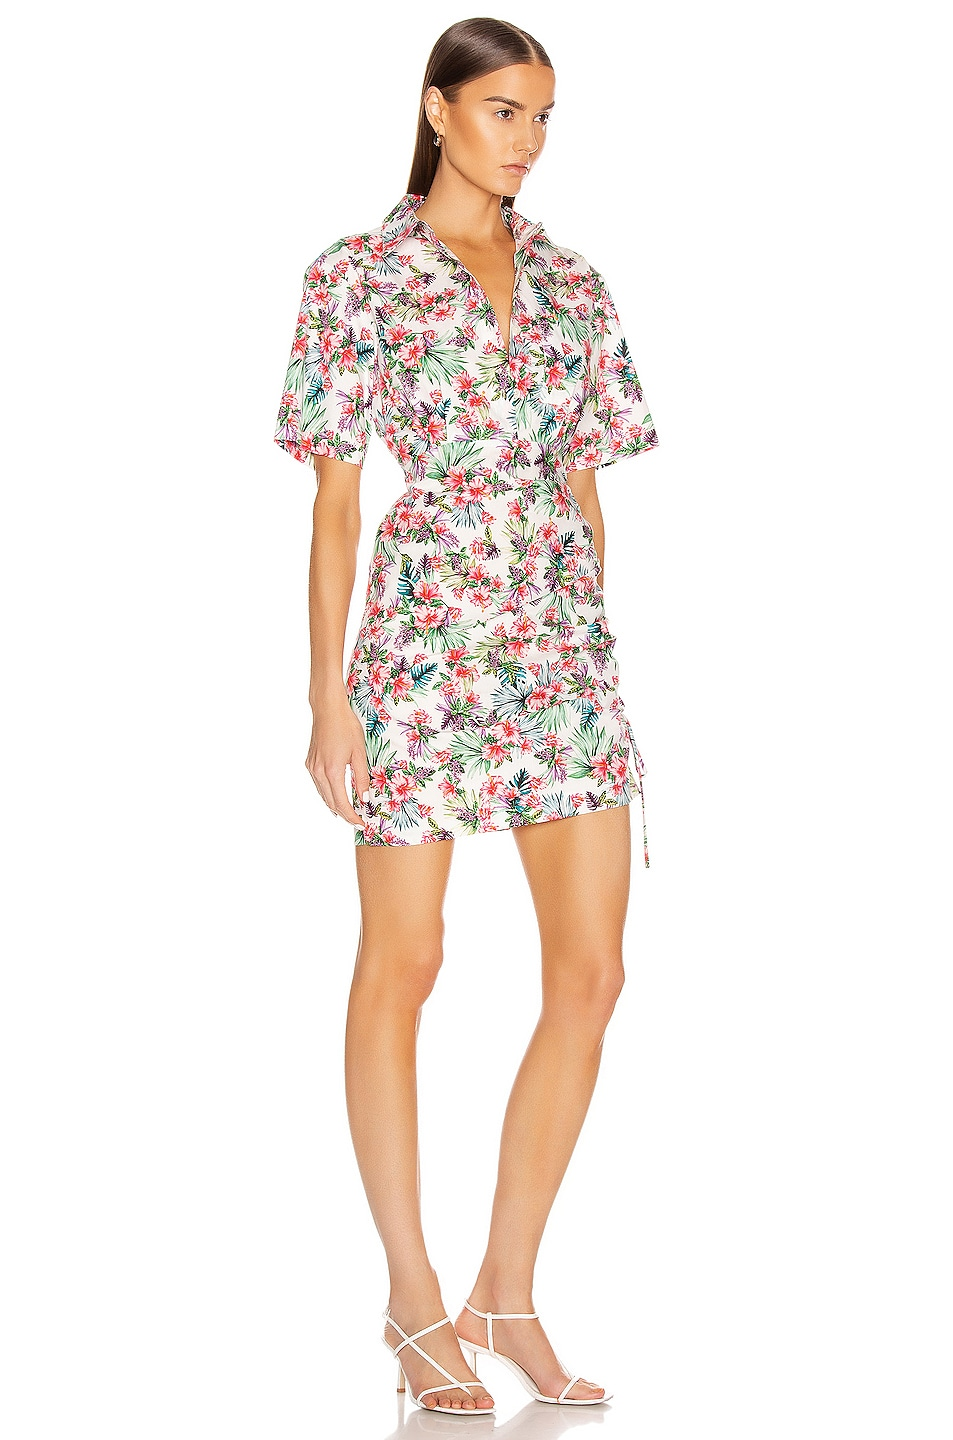 Image 3 of Les Reveries Ruched Skirt Cotton Shirt Dress in Hibiscus White